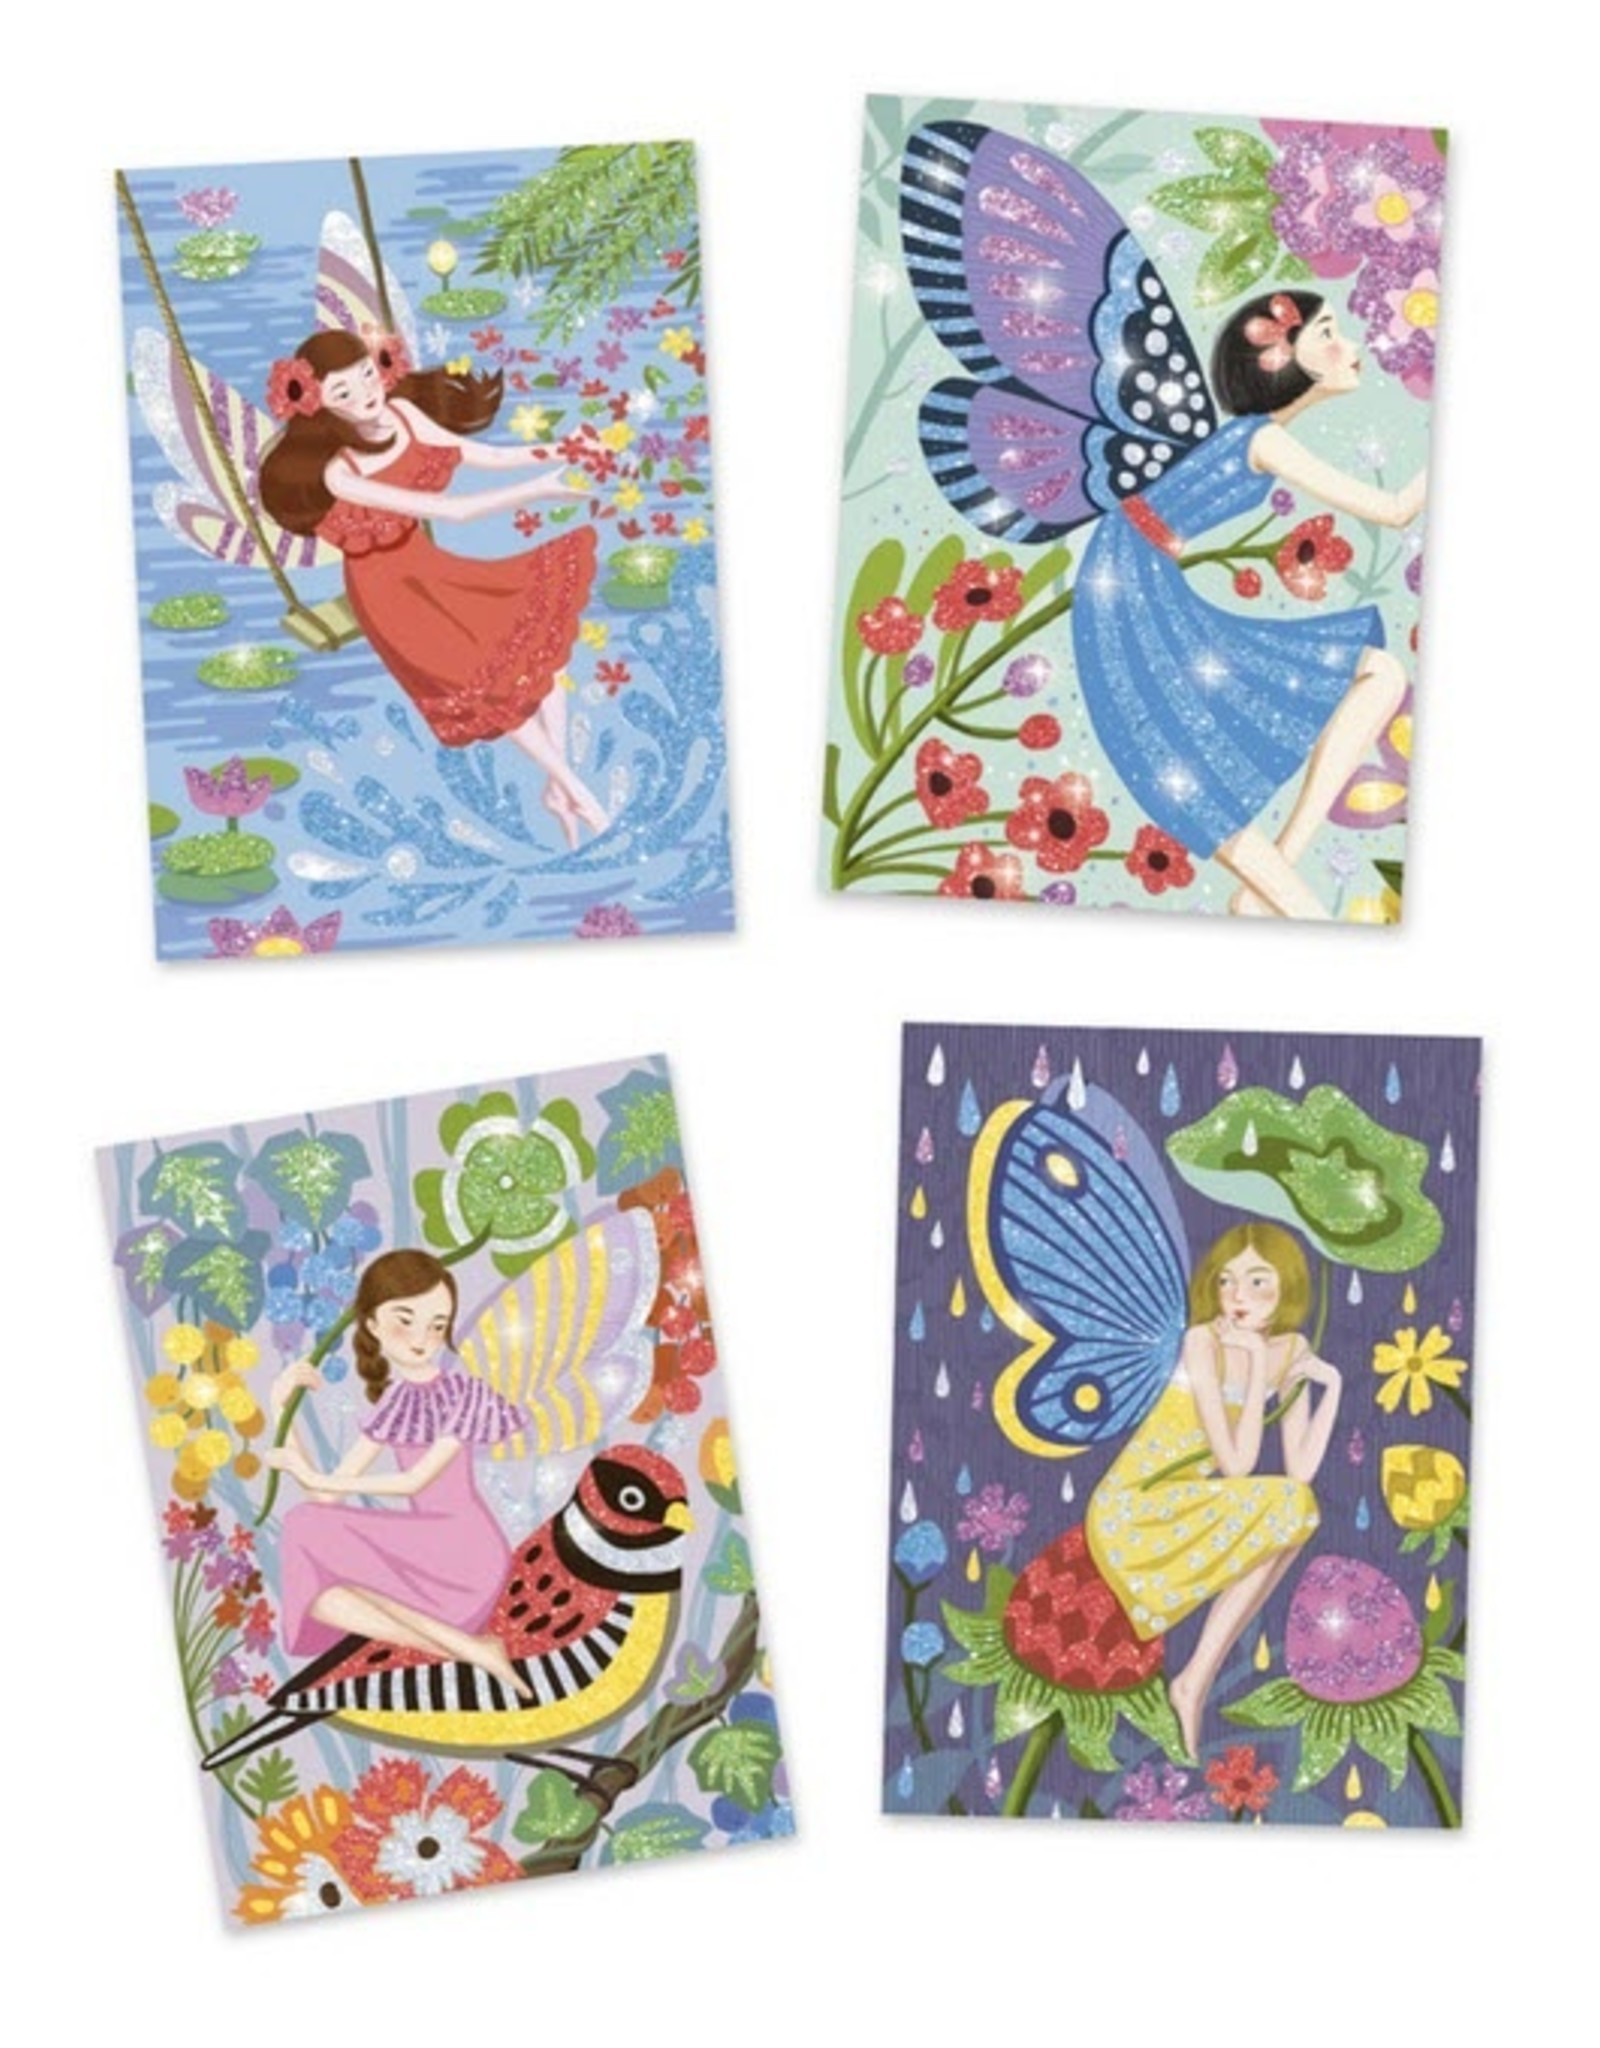 Djeco Djeco - The Gentle Life of Fairies Glitter Boards